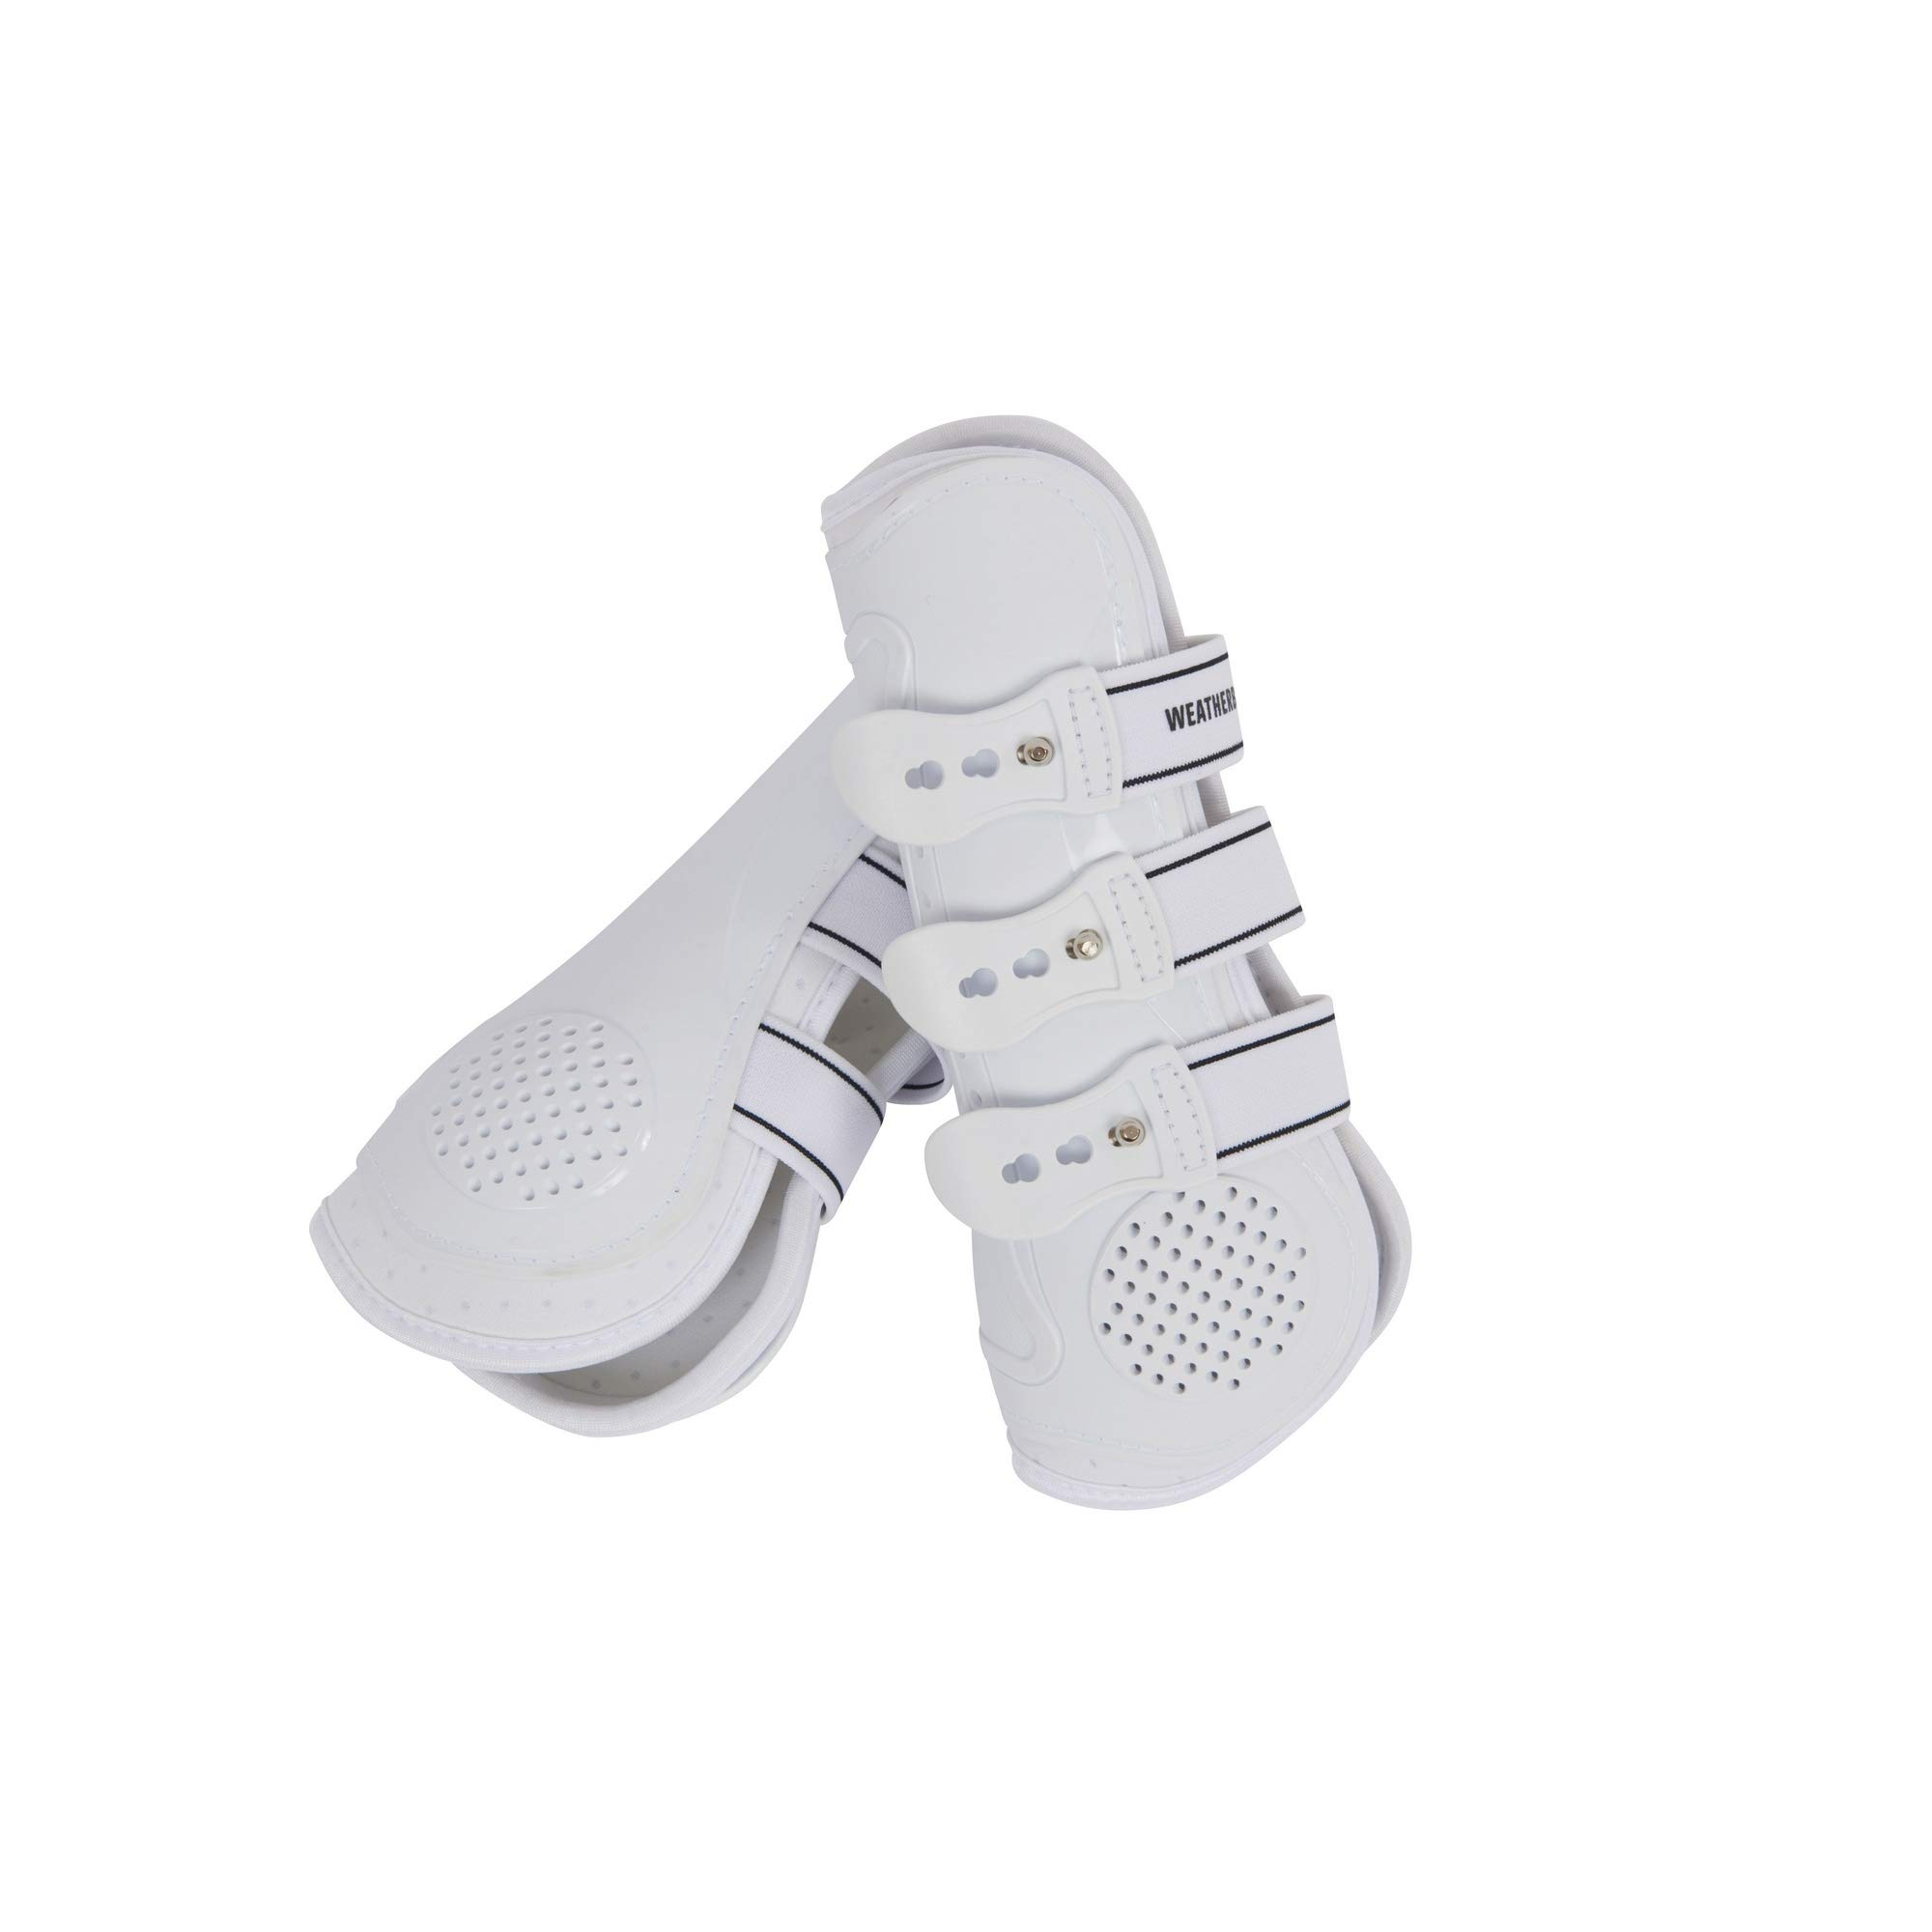 Weatherbeeta Pro Air Open Front Boots (Full) (White) by Weatherbeeta